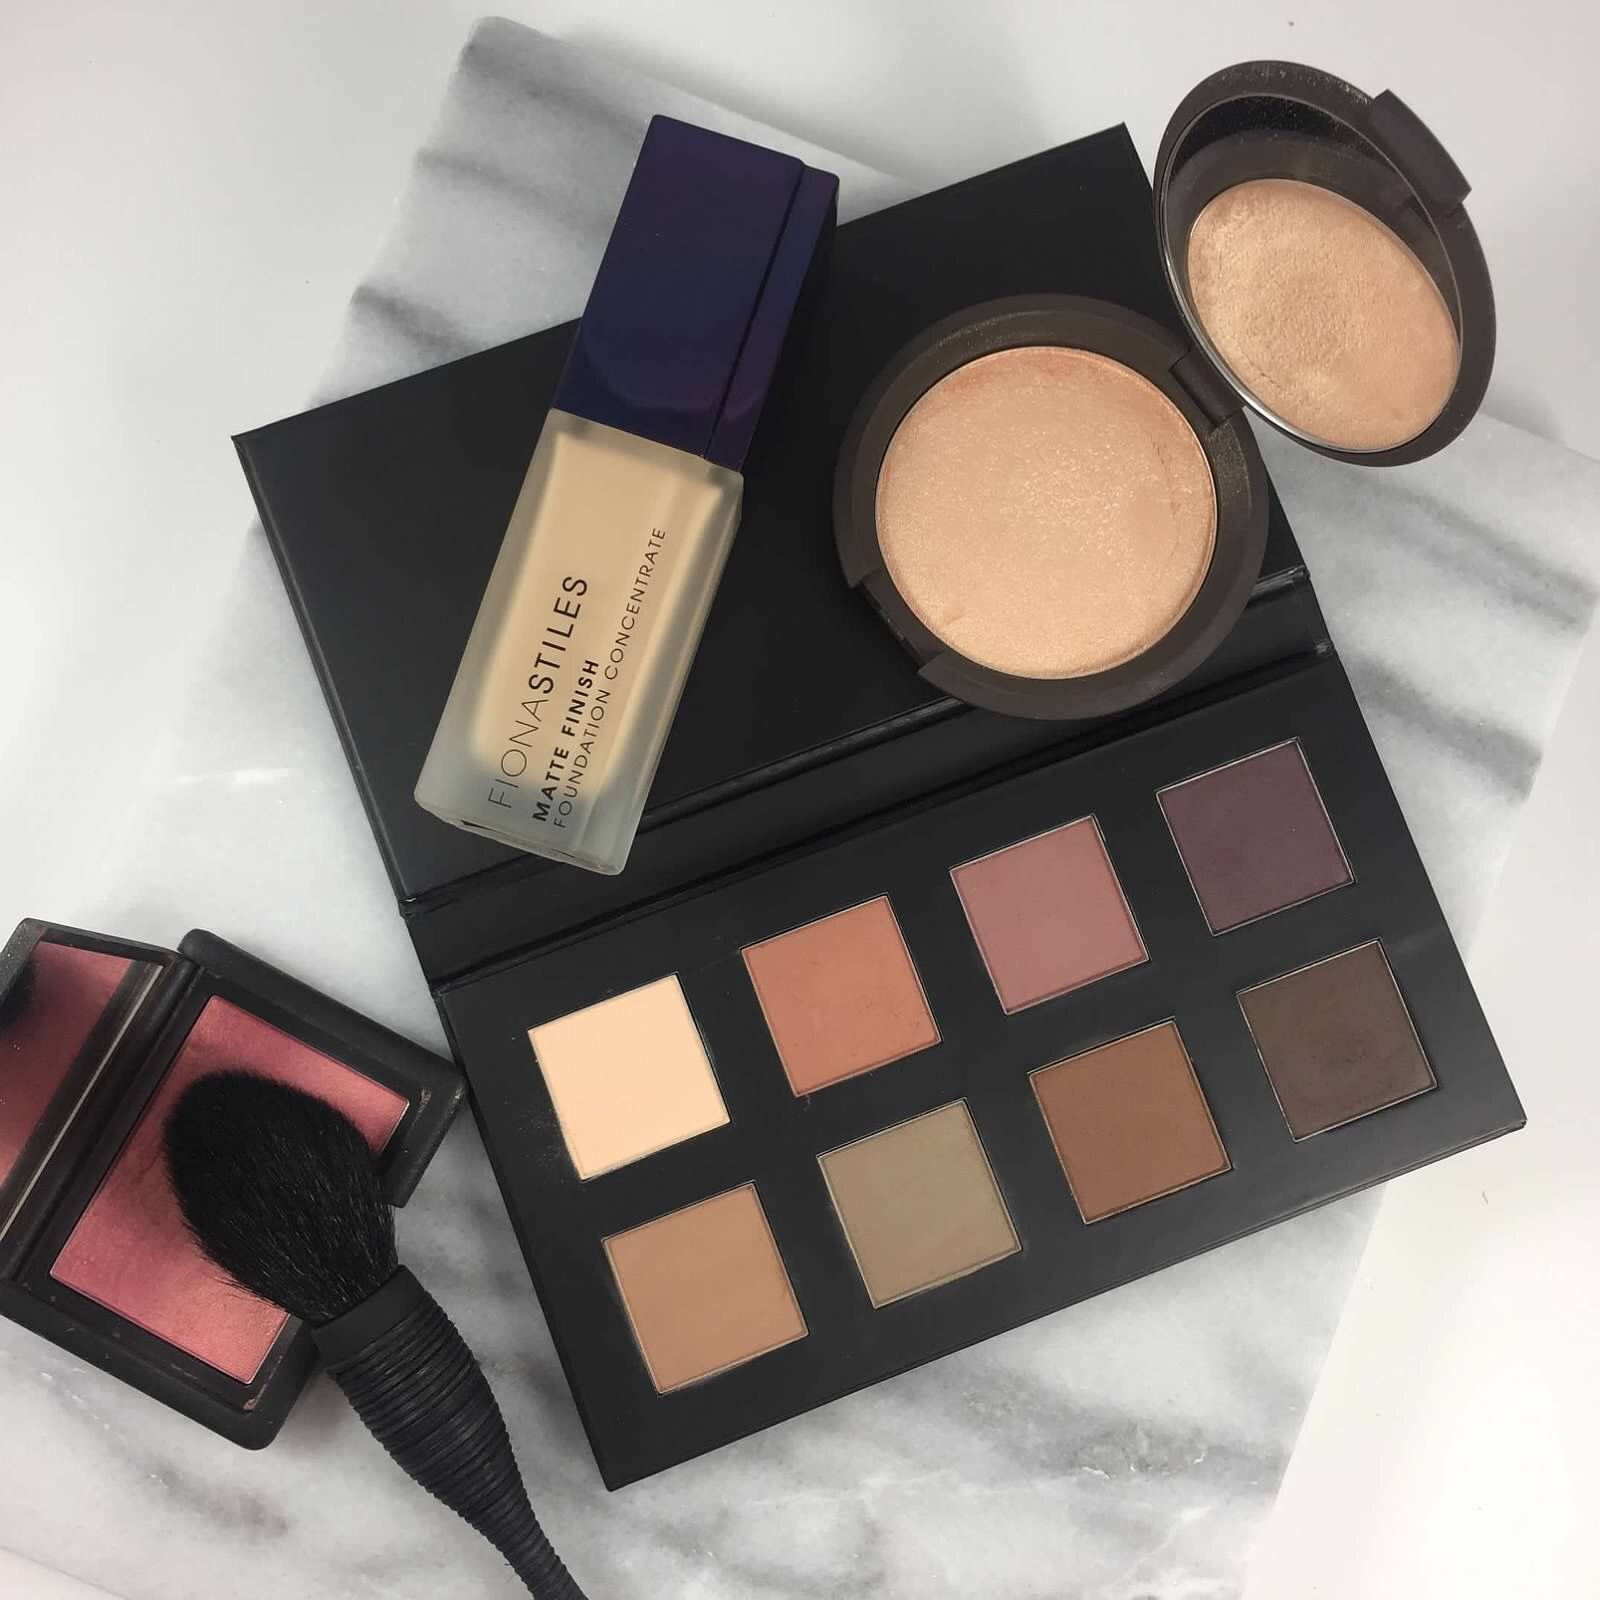 Japonesque Eyeshadow Palette Fiona Stiles Matte Foundation